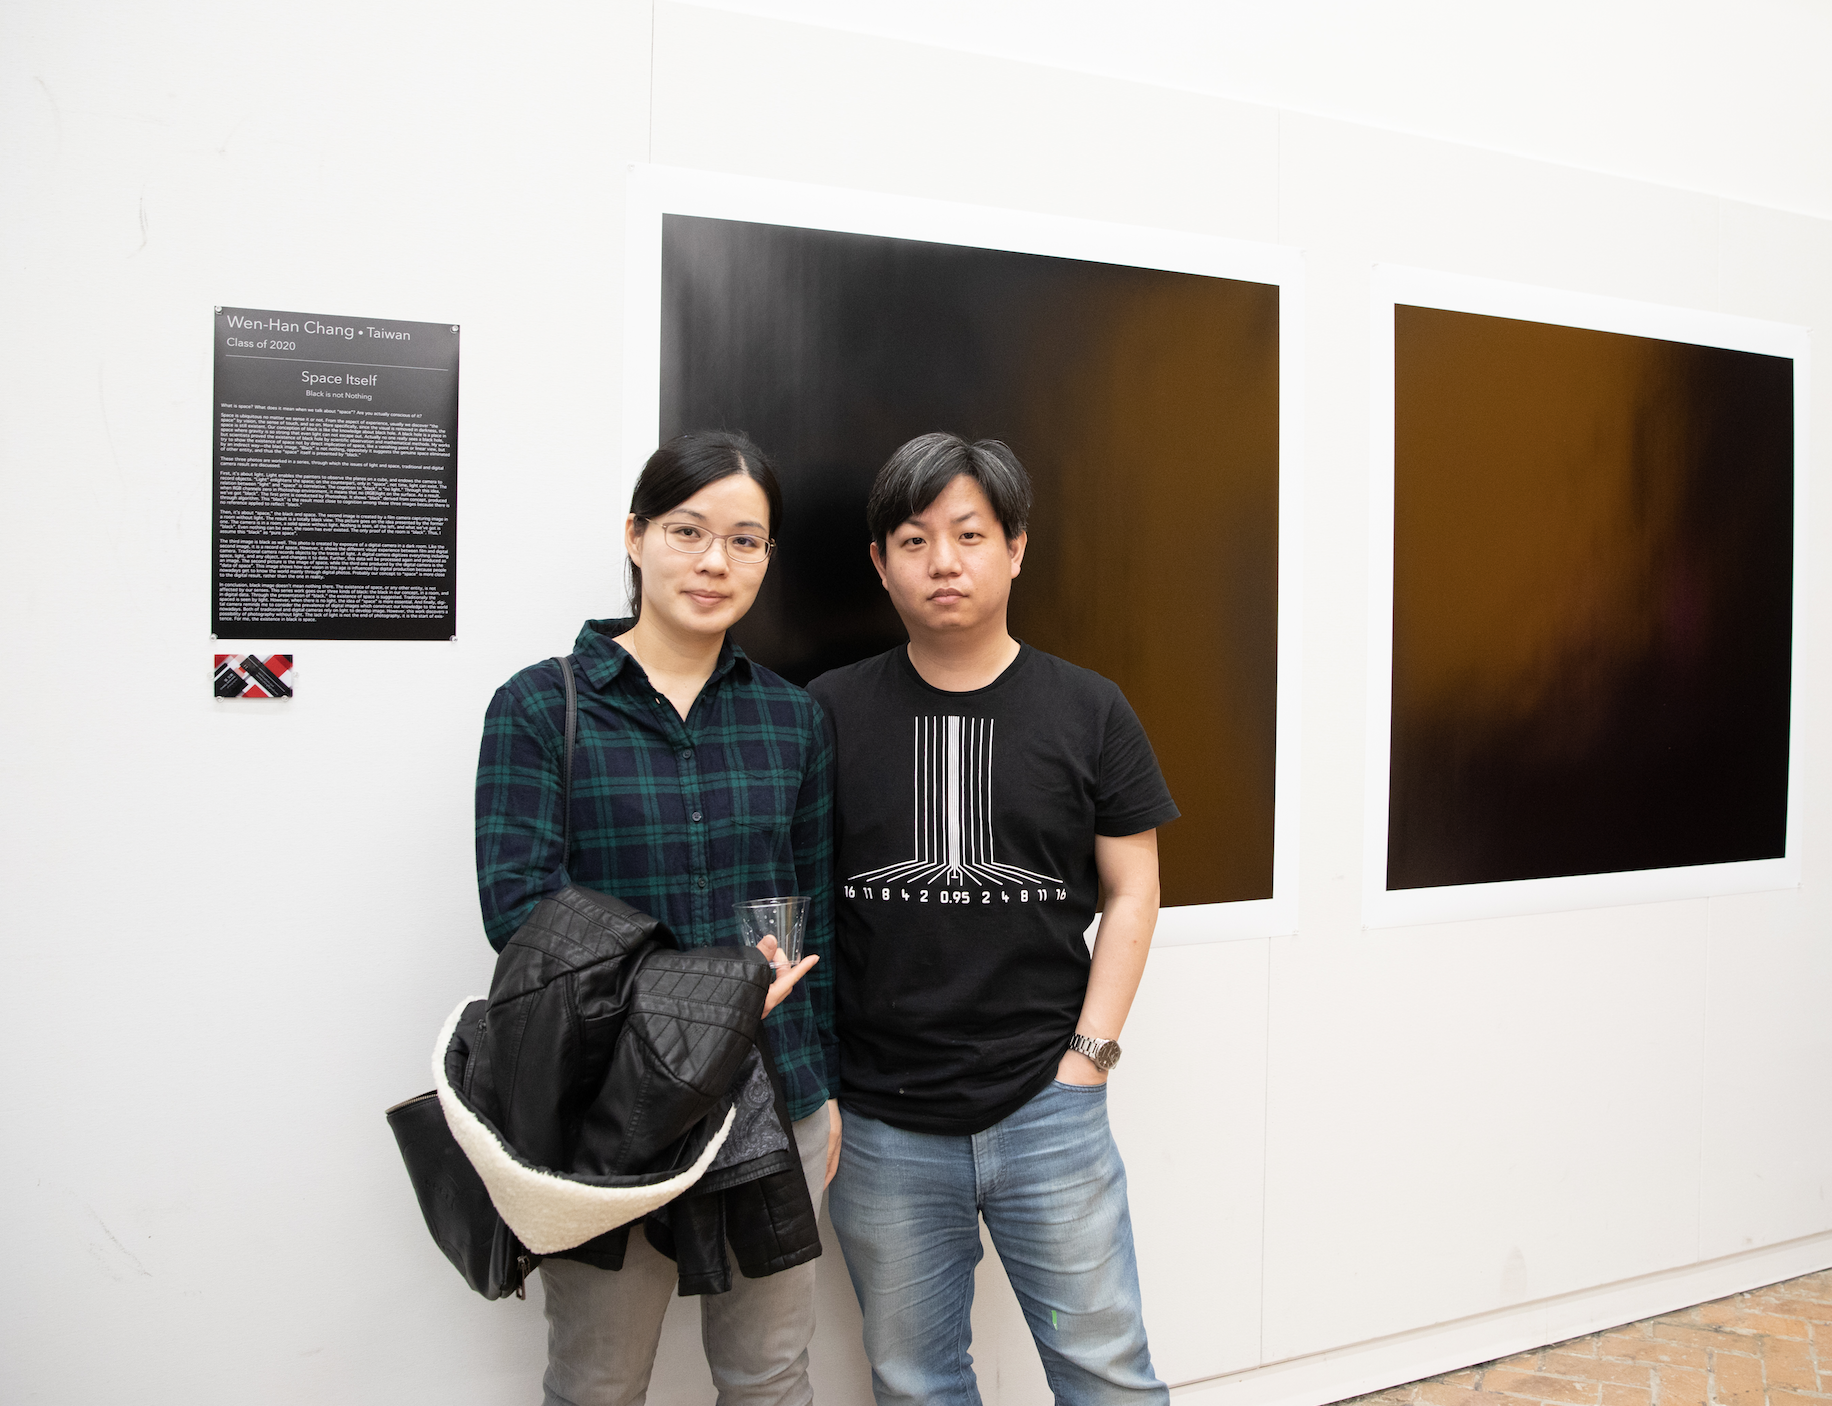 Wen Han Chang  (class of 2020) and guest beside his work.